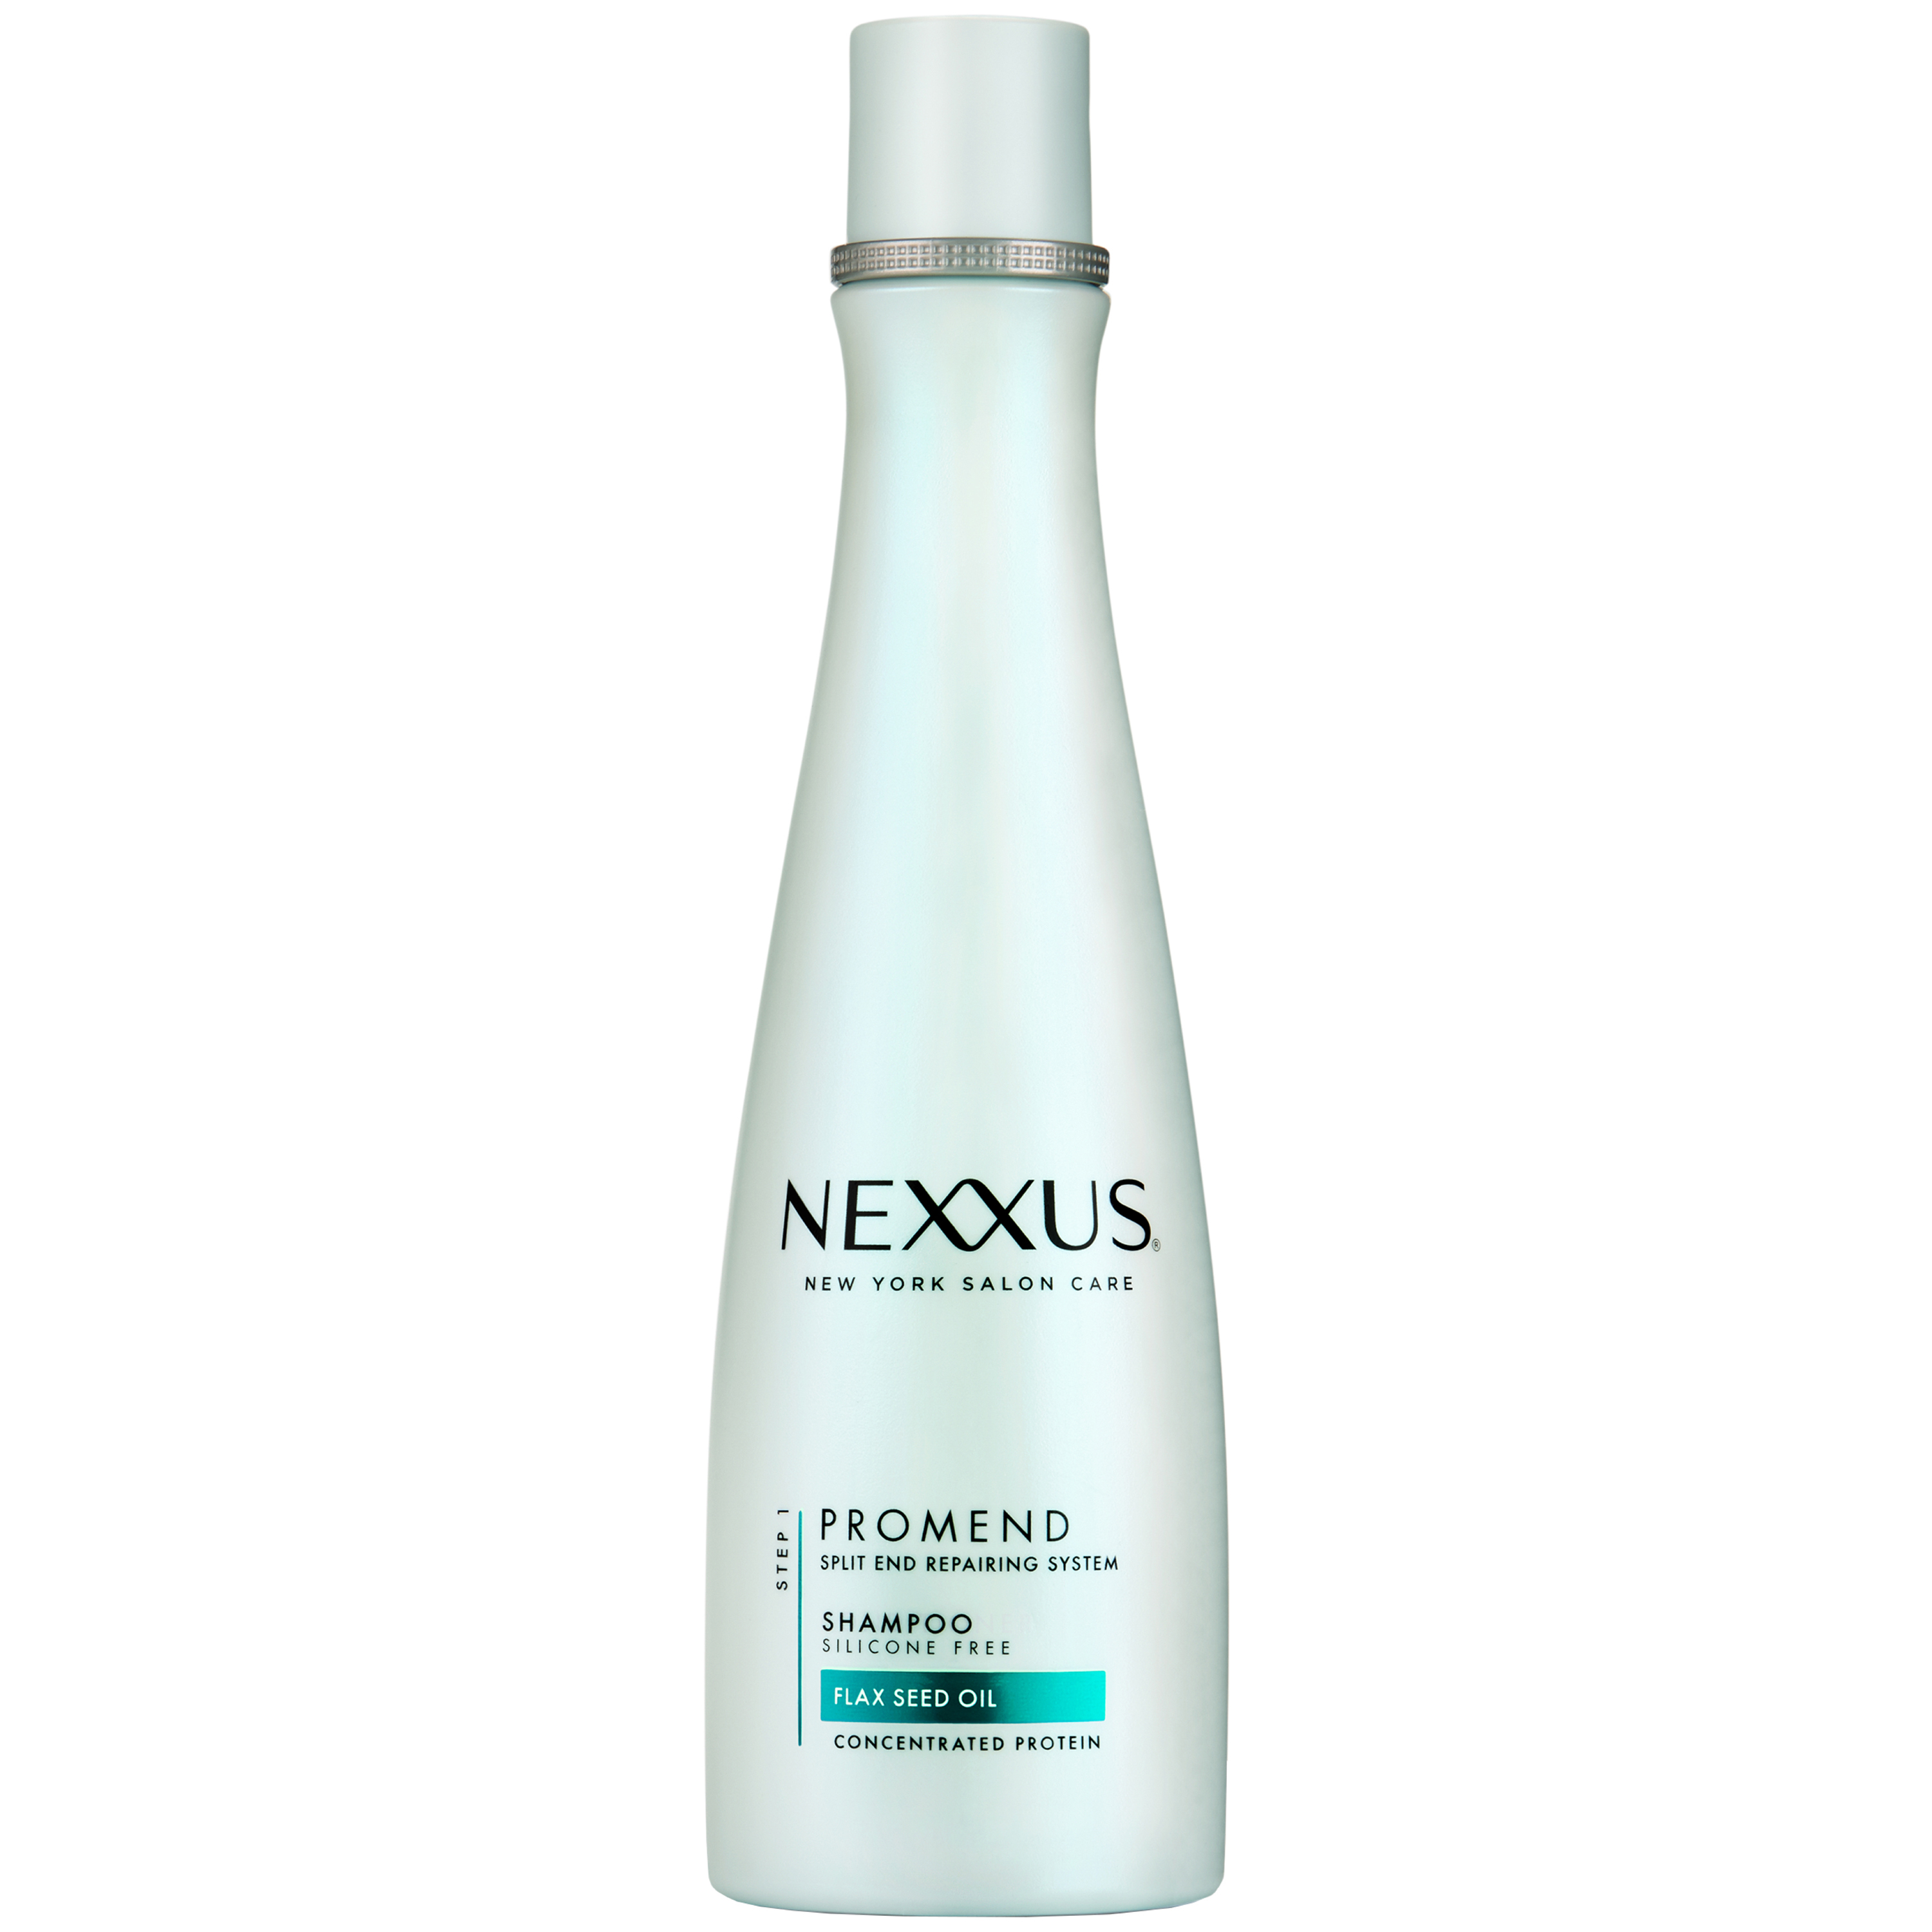 Nexxus Promend for Hair Prone to Split Ends Shampoo, 13.5 oz